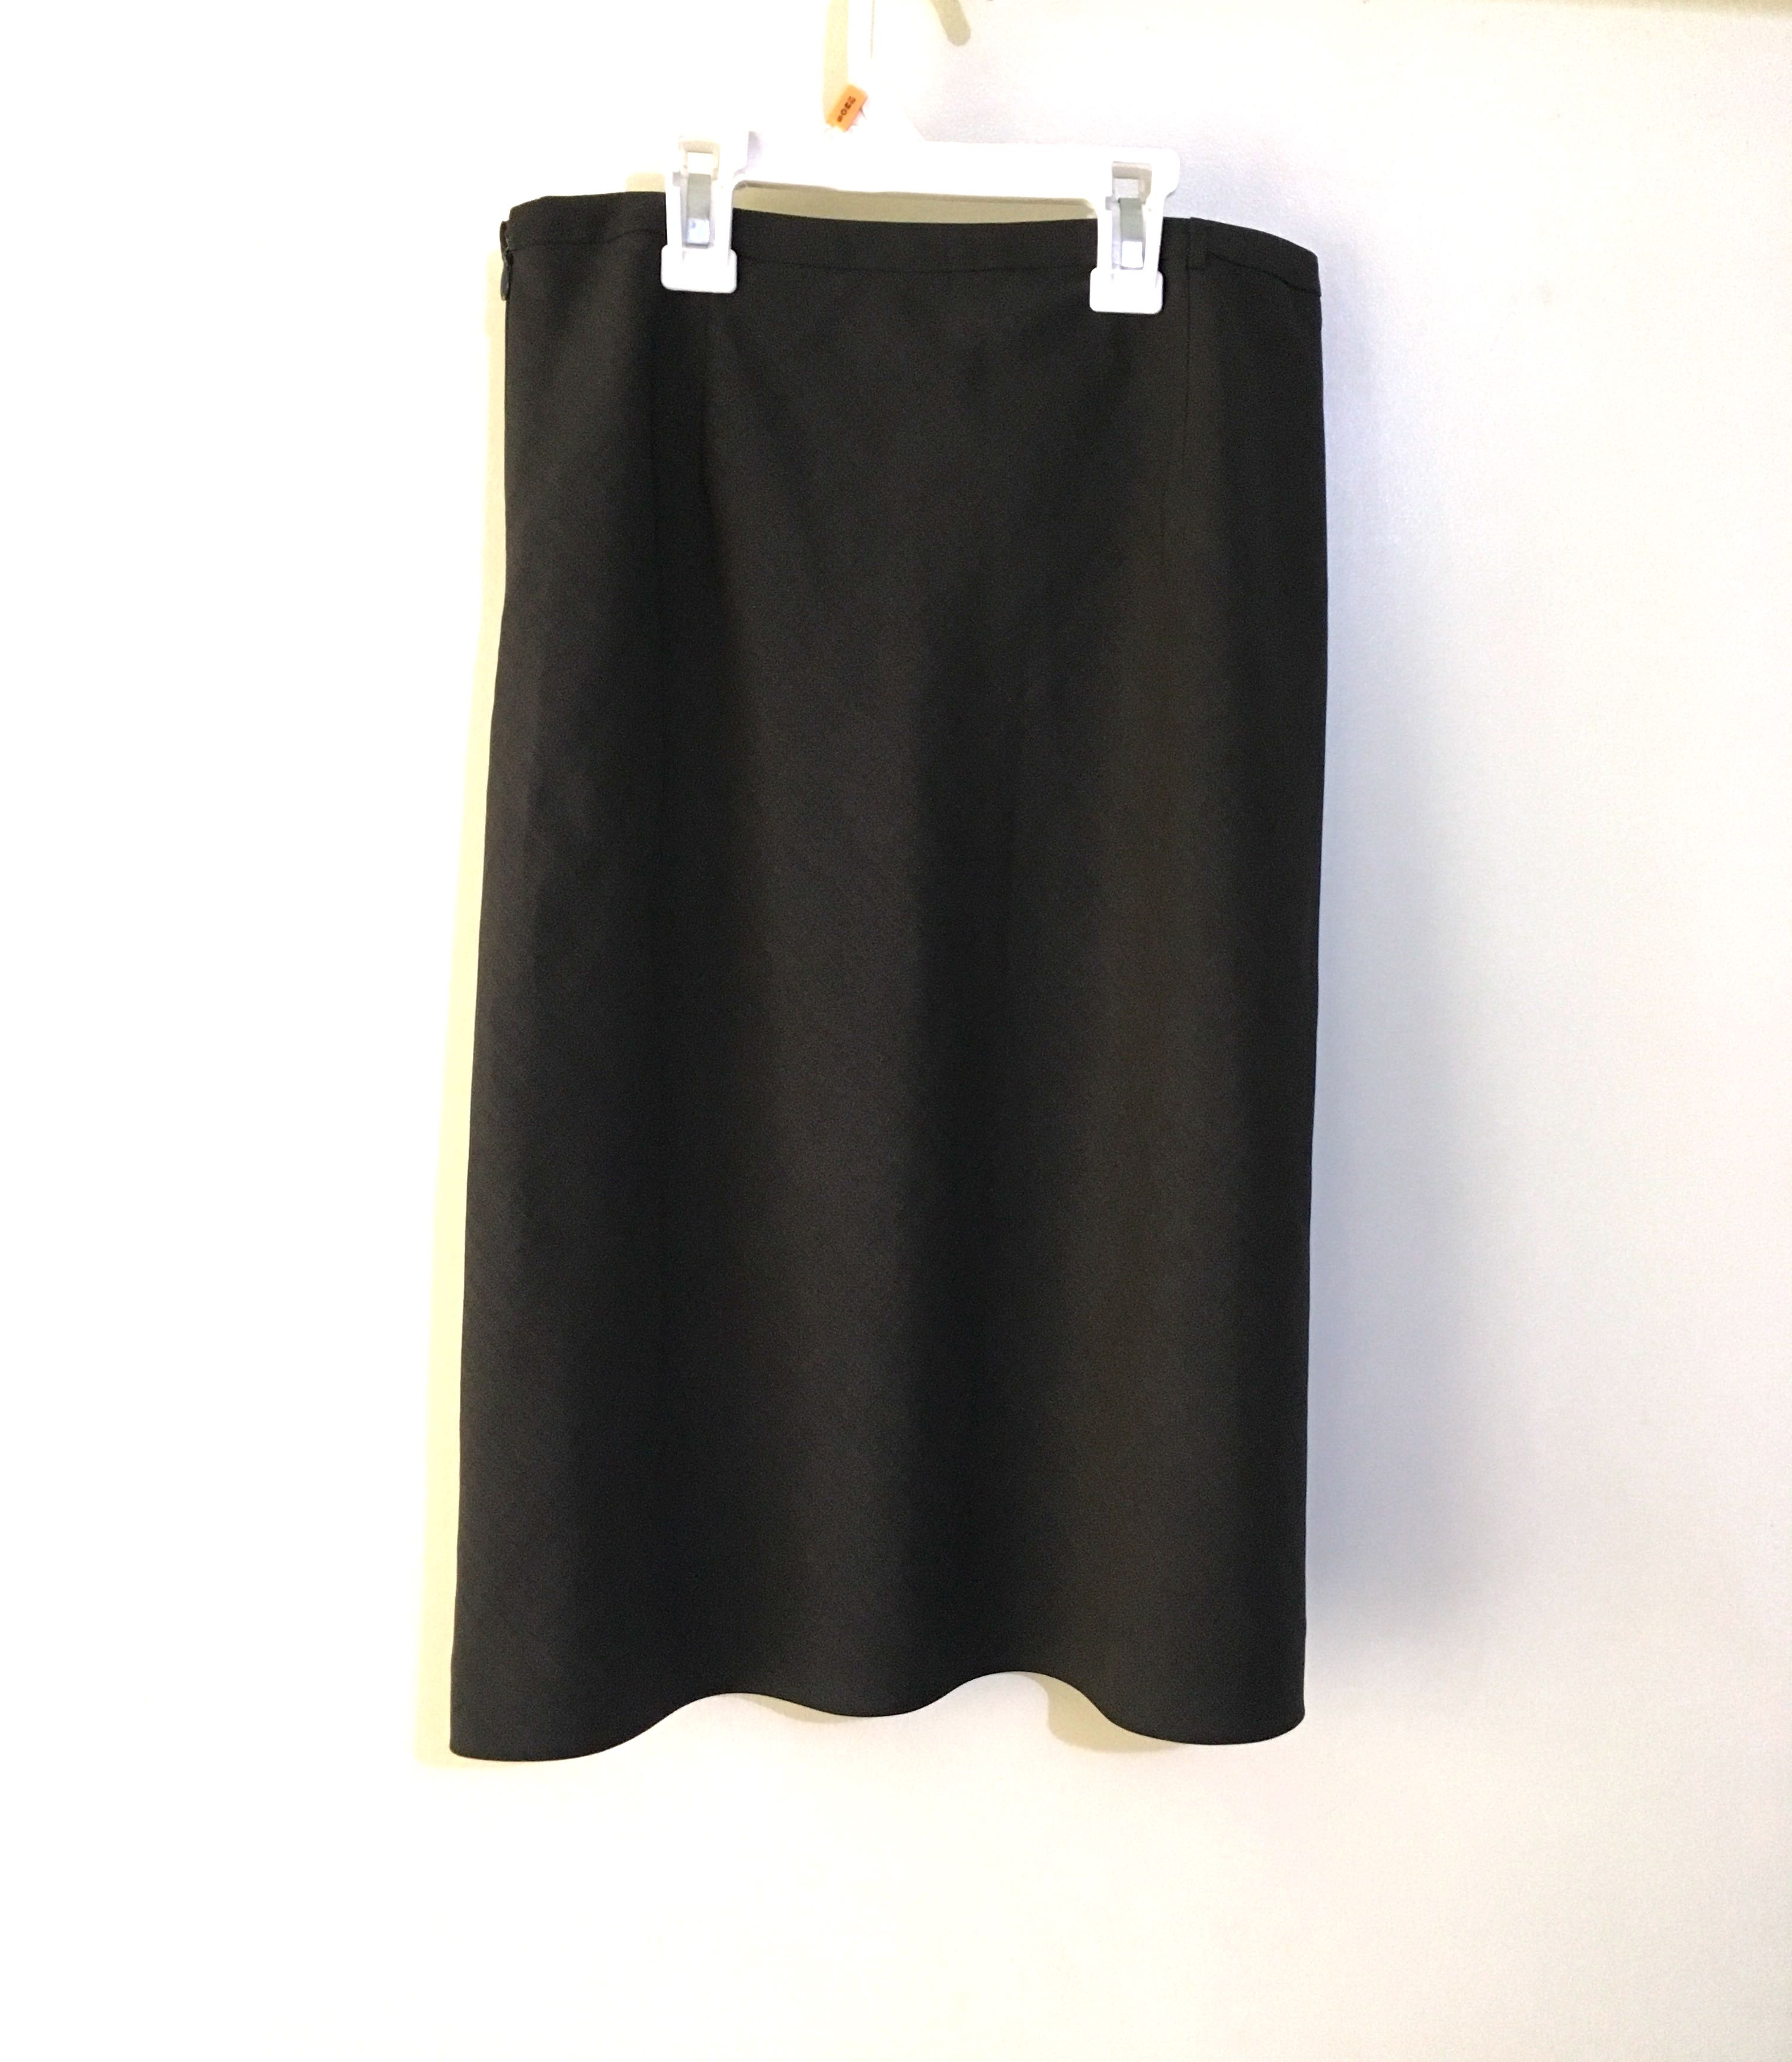 Charity Sale! Authentic G2000 Women's Dressy Skirt Size 5 Pencil Skirt